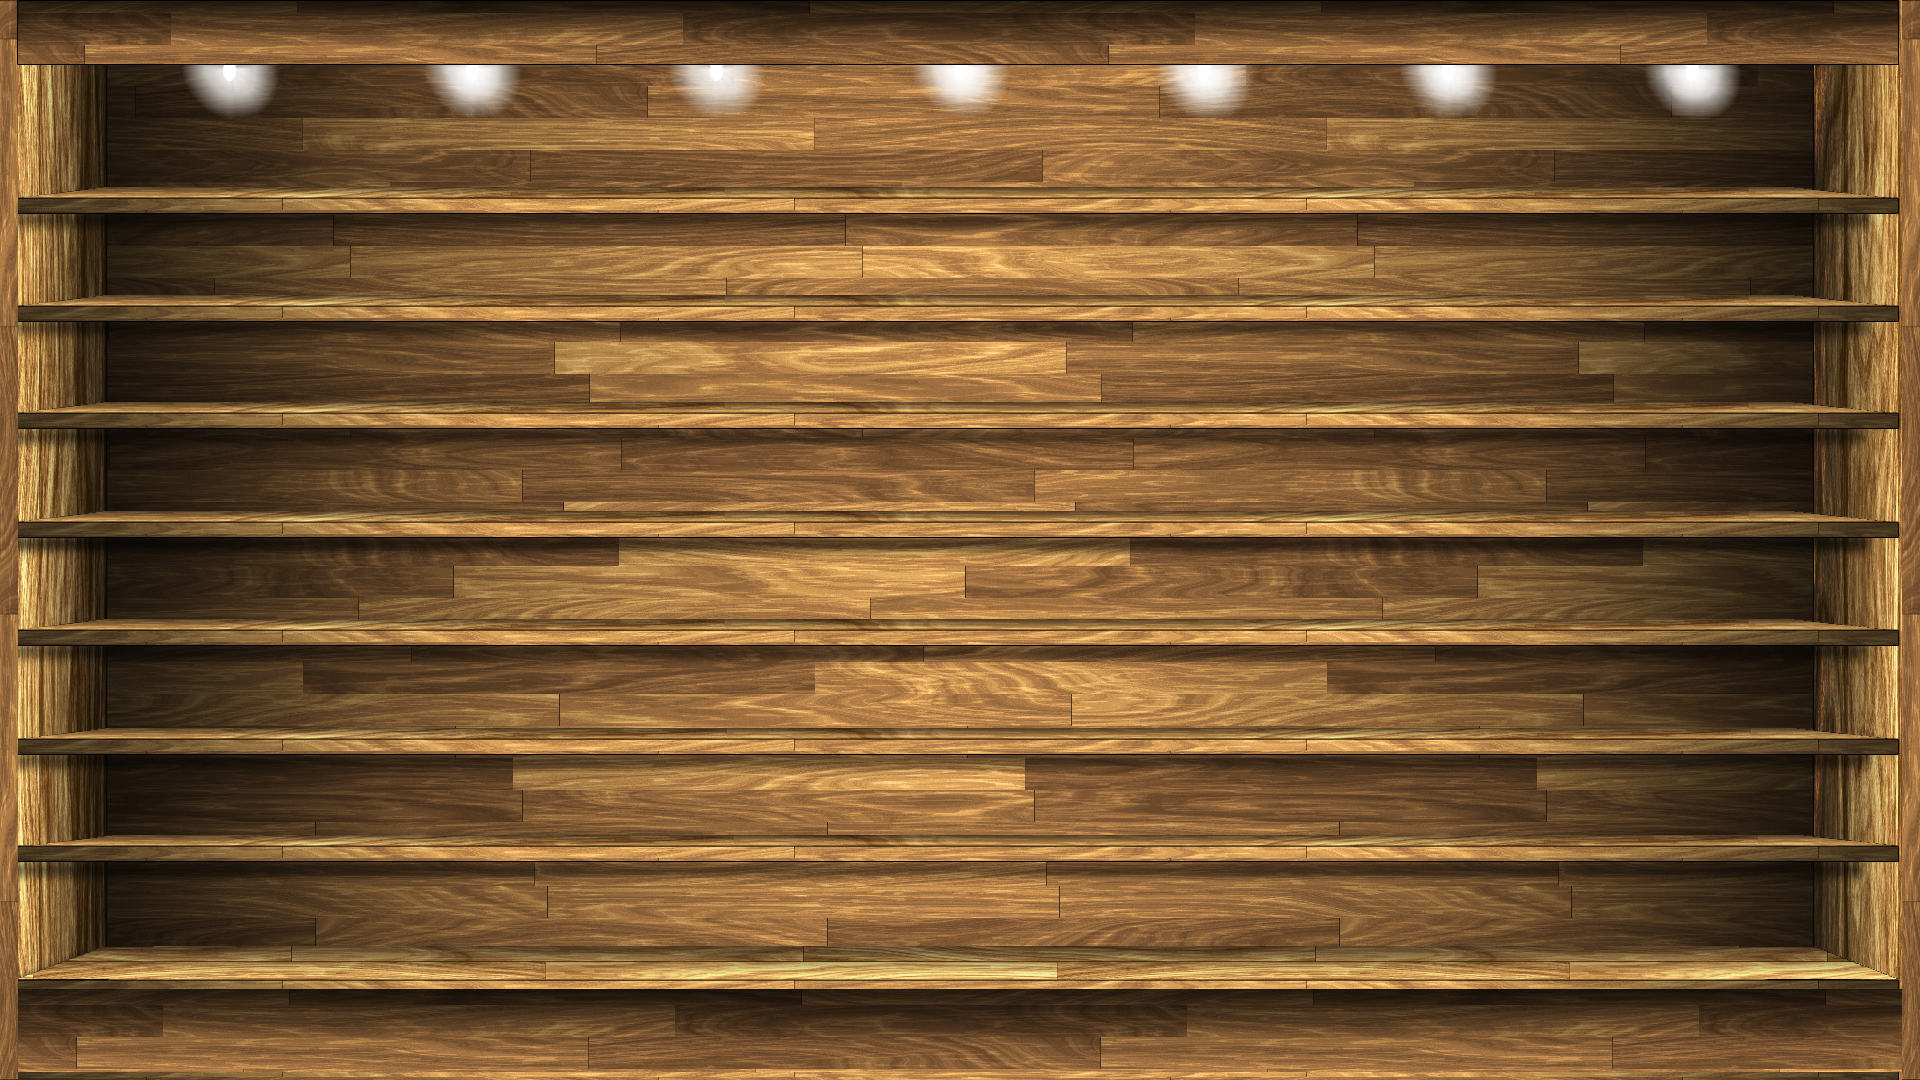 Marvelous photograph of Wood Shelves Wallpaper 2 by SamirPA on DeviantArt Desktop Background  with #AA7521 color and 1920x1080 pixels